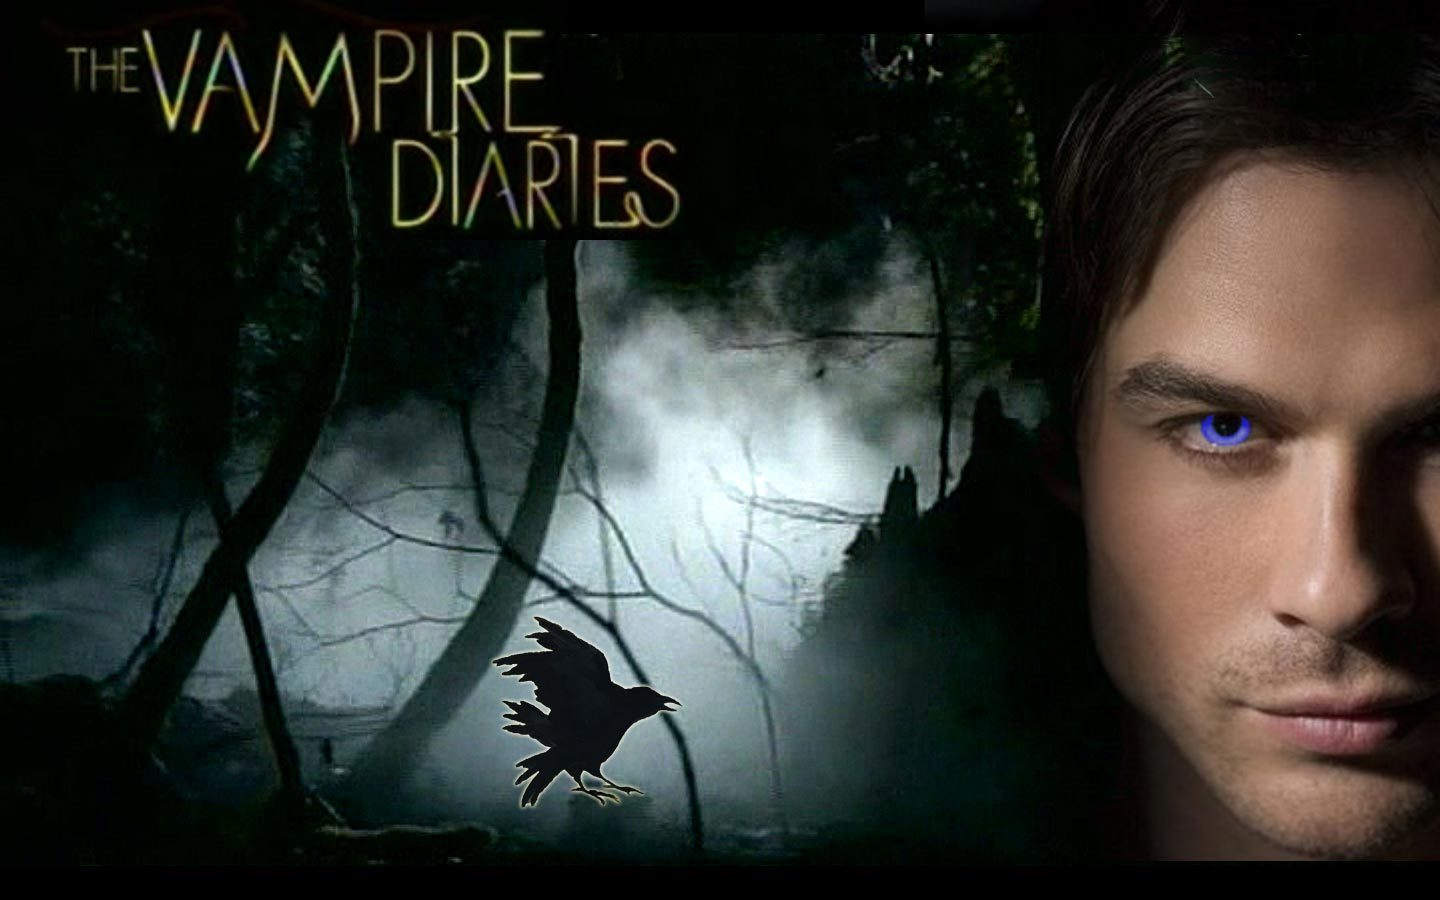 Vampire Love Hd Wallpaper : Vampire Diaries Wallpaper 12159 1440x900 px ~ HDWallSource.com